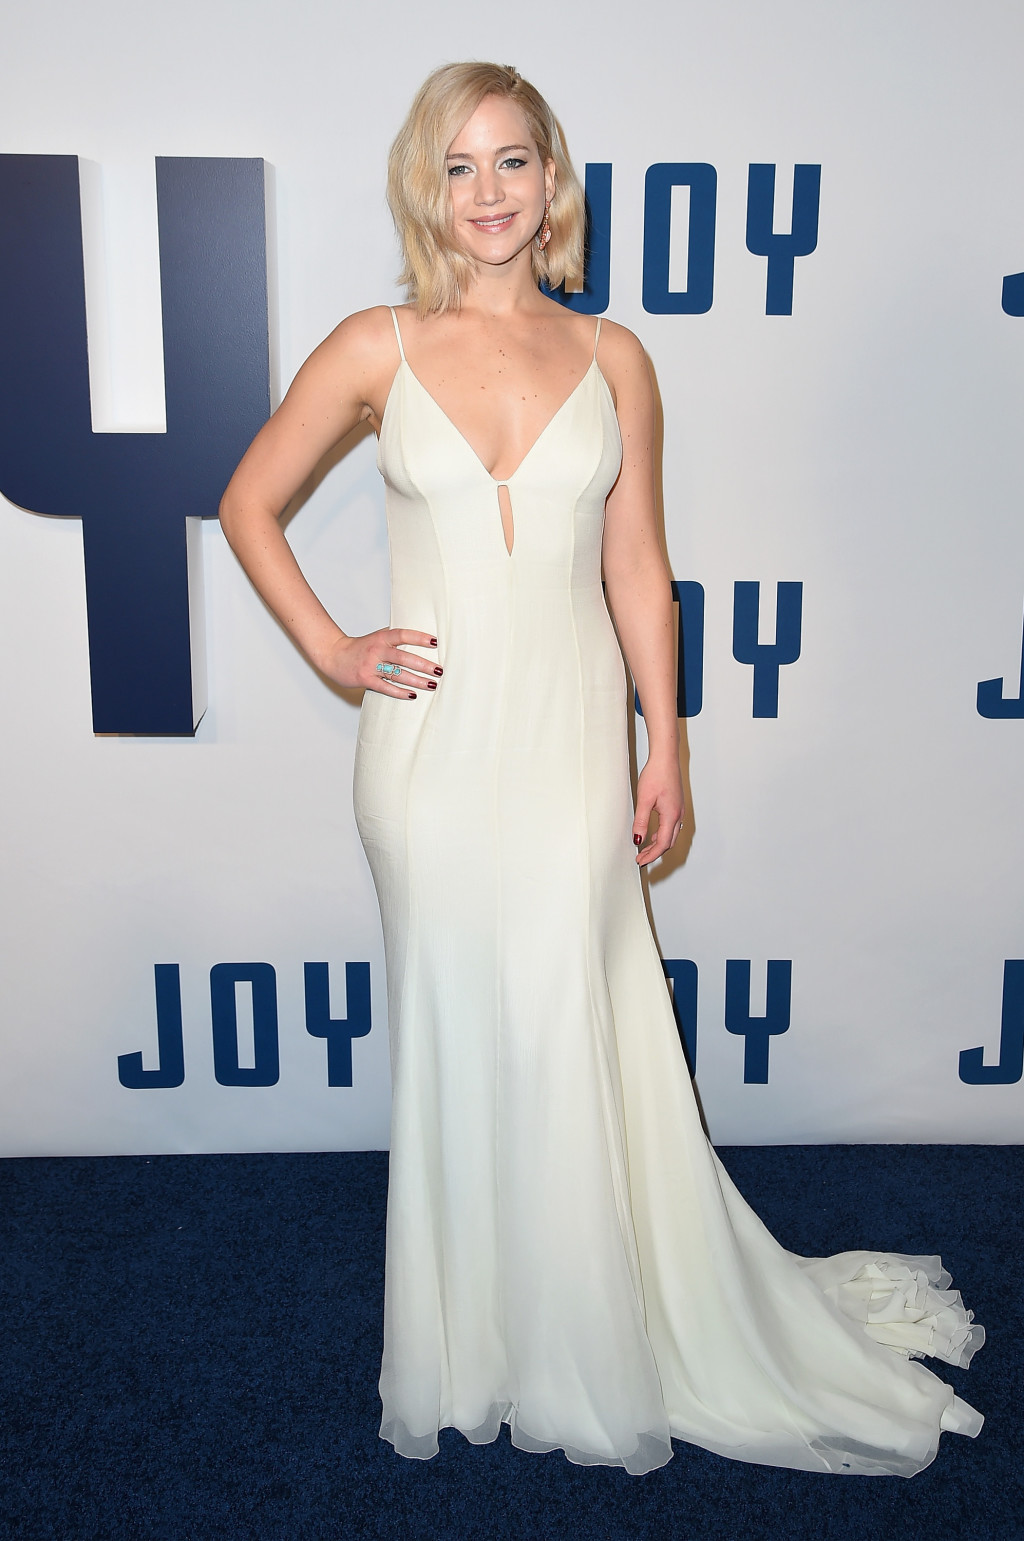 Jennifer Lawrence wearing a white Dior Couture gown at the 'Joy' premiere